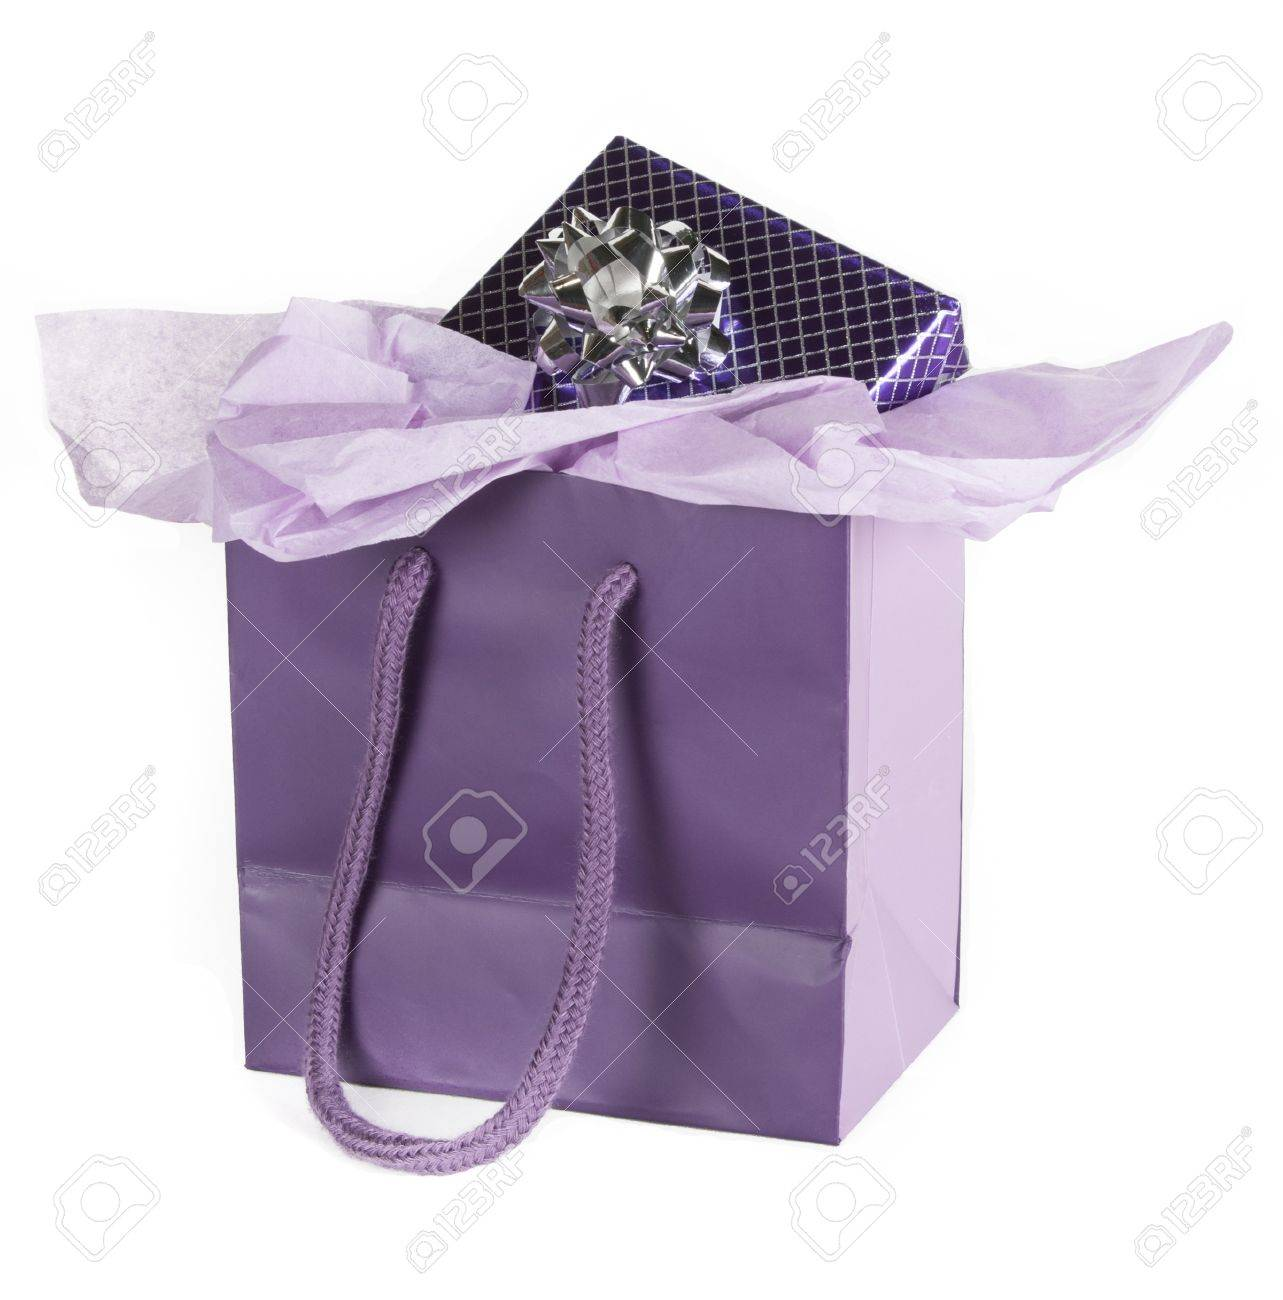 skate shoes great quality special section Present wrapped in purple paper in purple gift bag